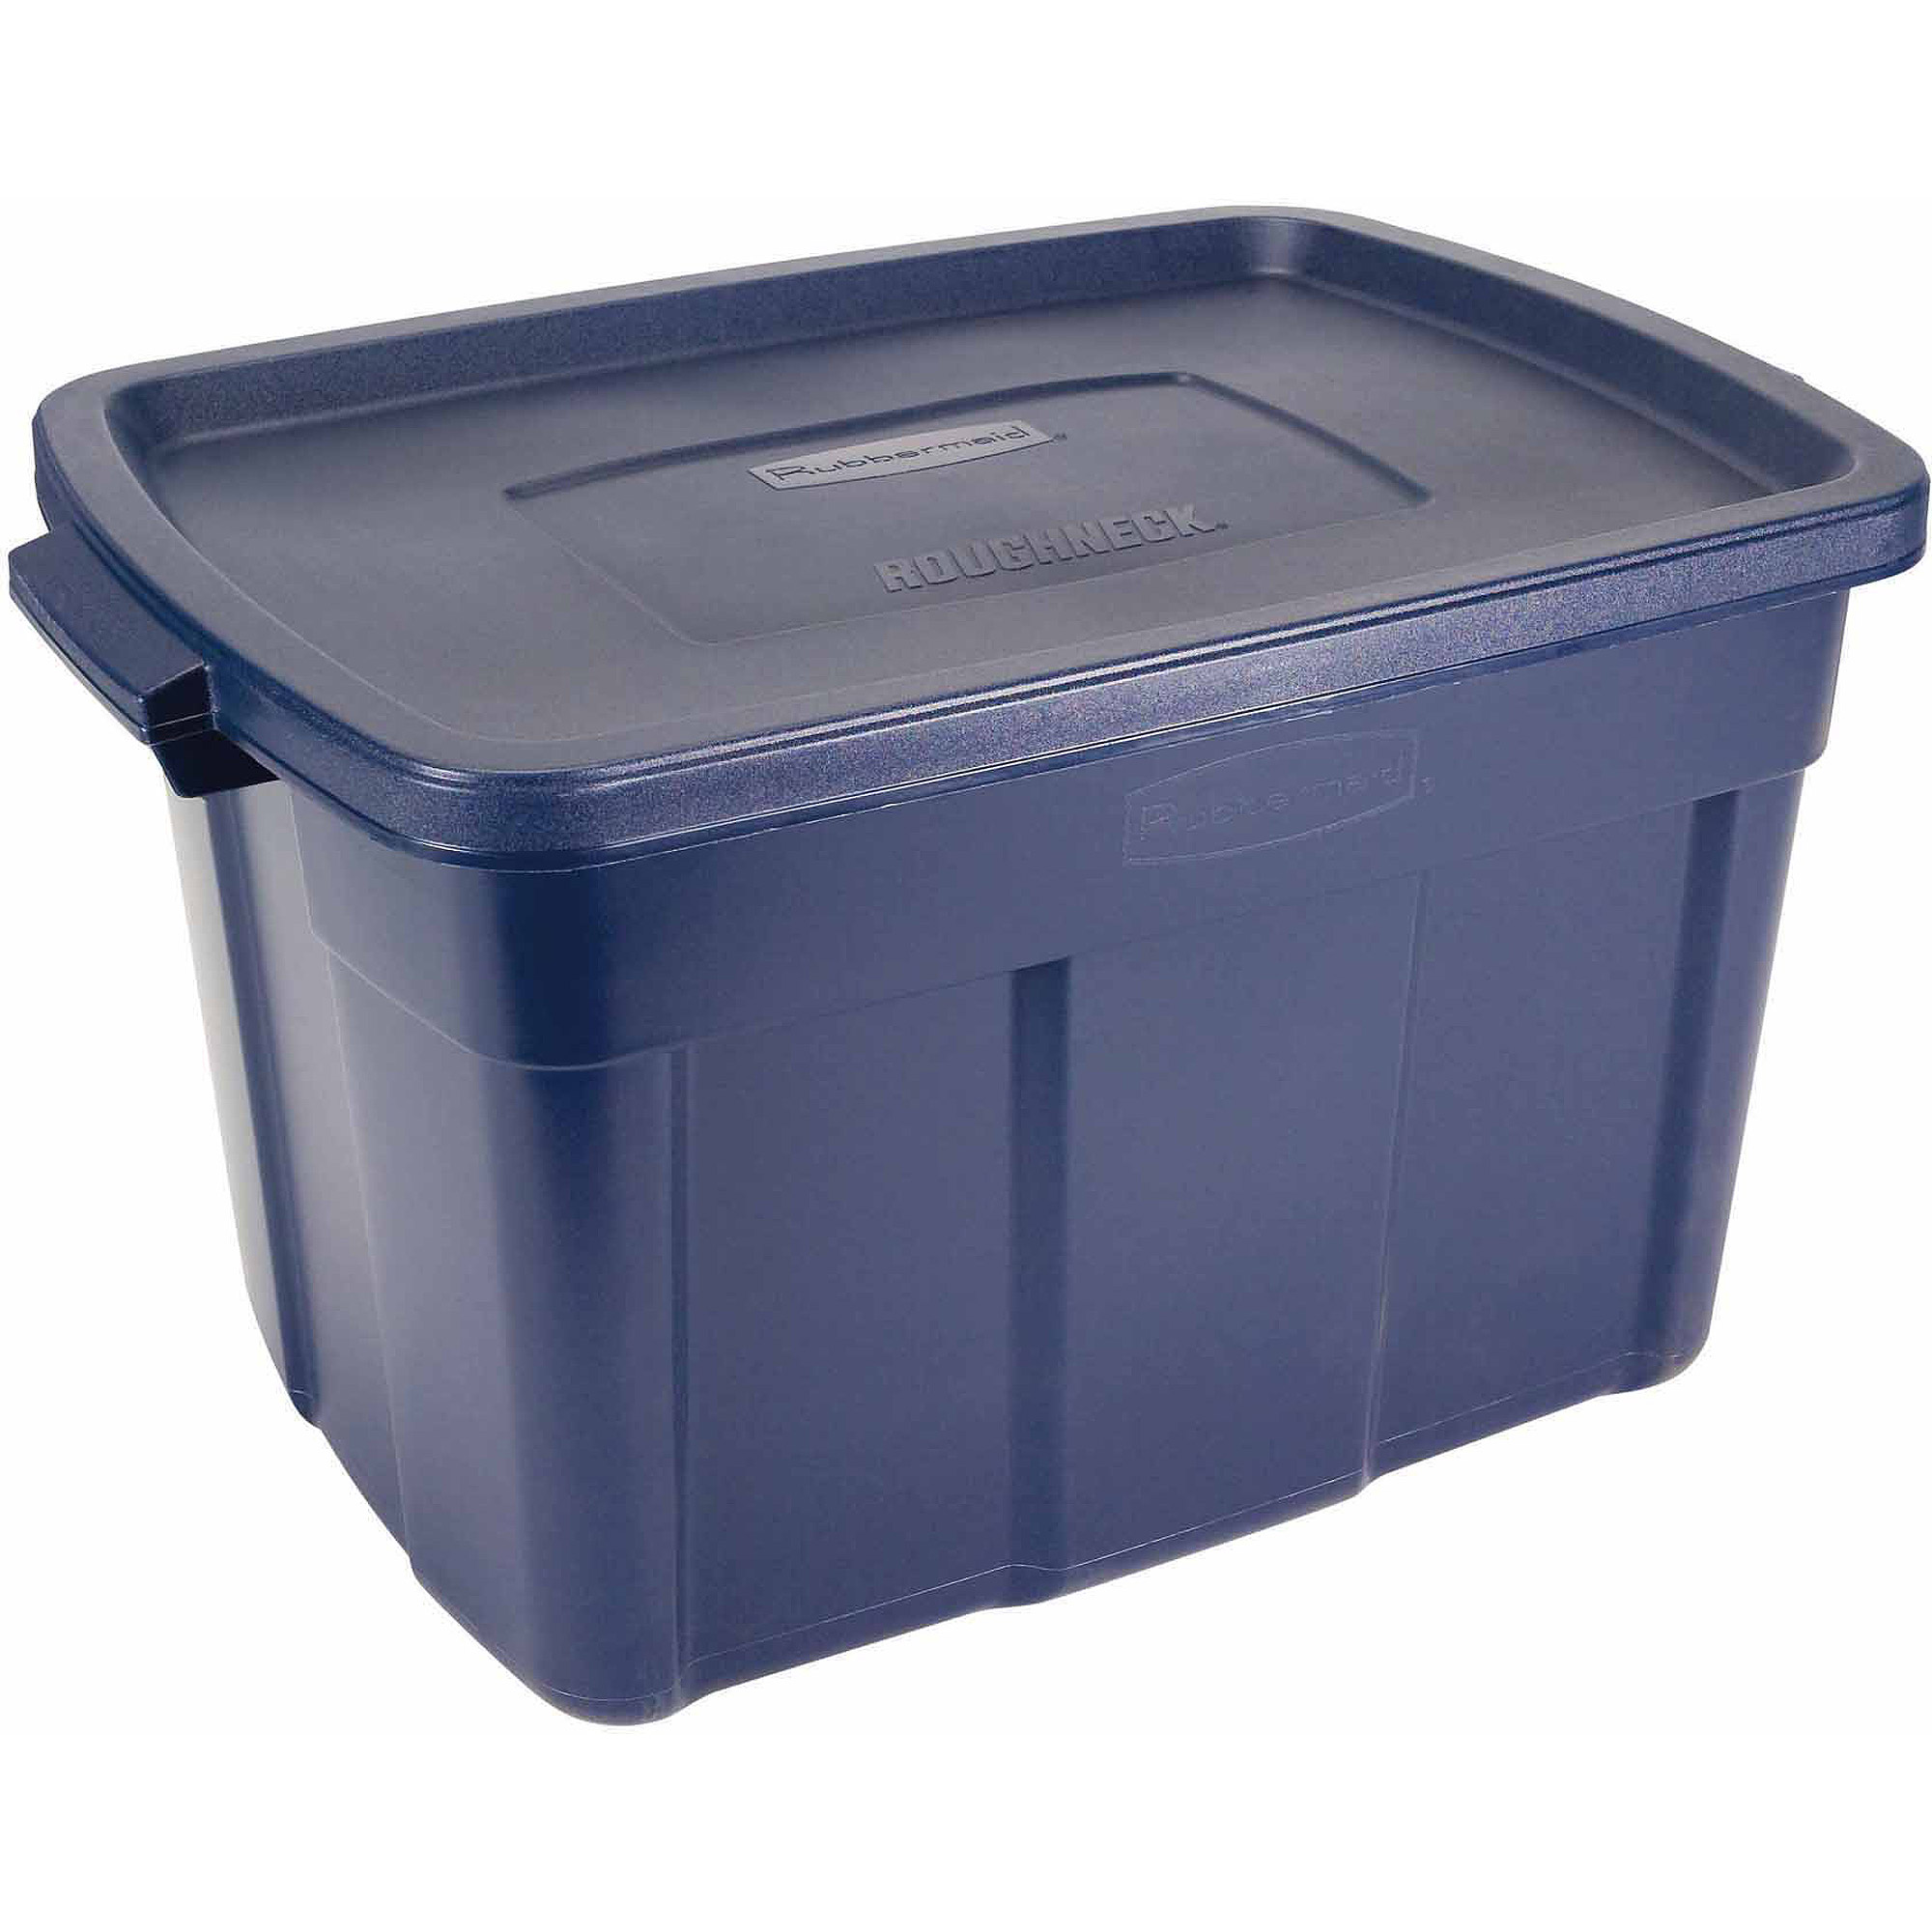 Newell Rubbermaid Roughneck Tote Storage Bin, 25 Gal, Dar...